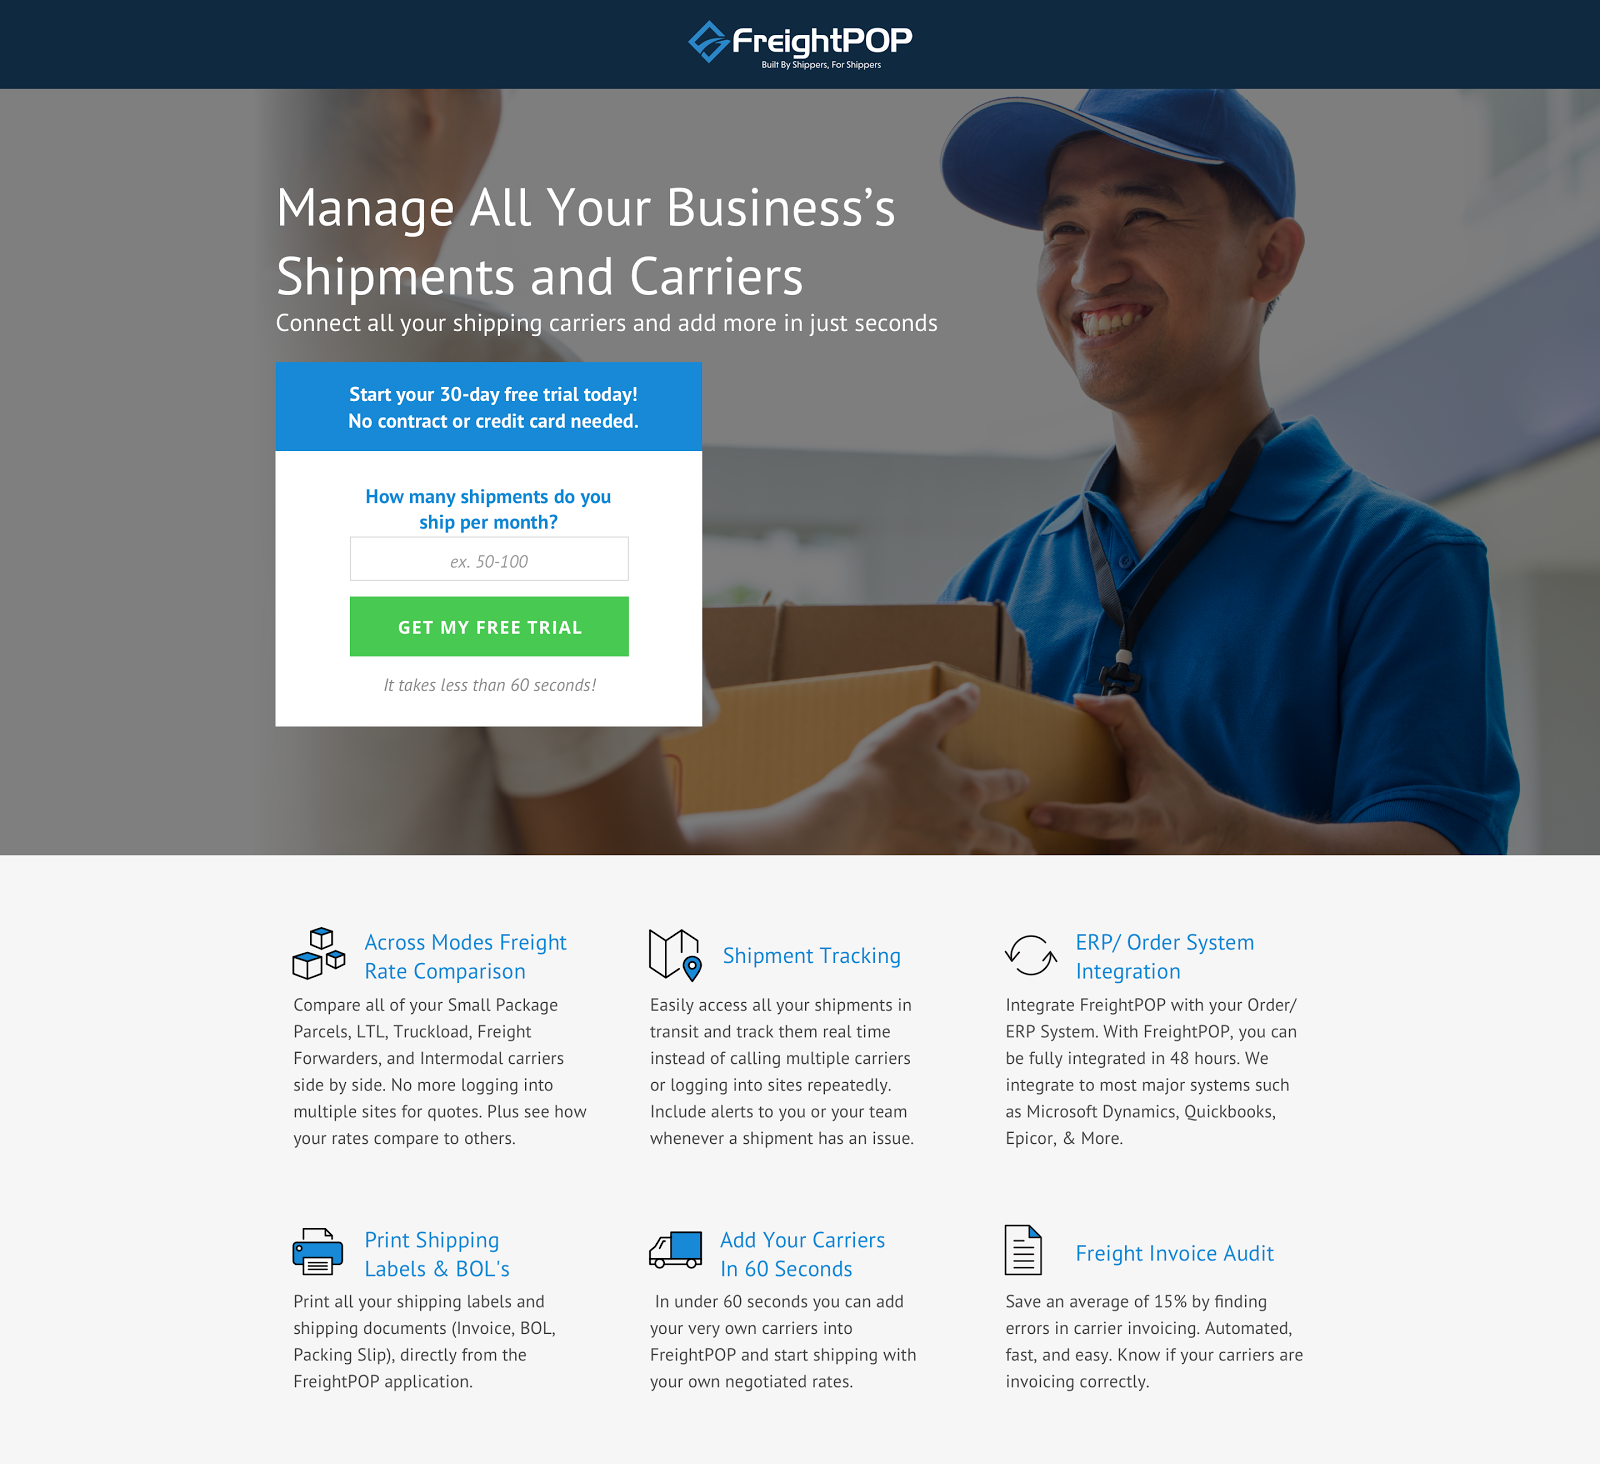 """Manage All Your Business's Shipments and Carriers"""